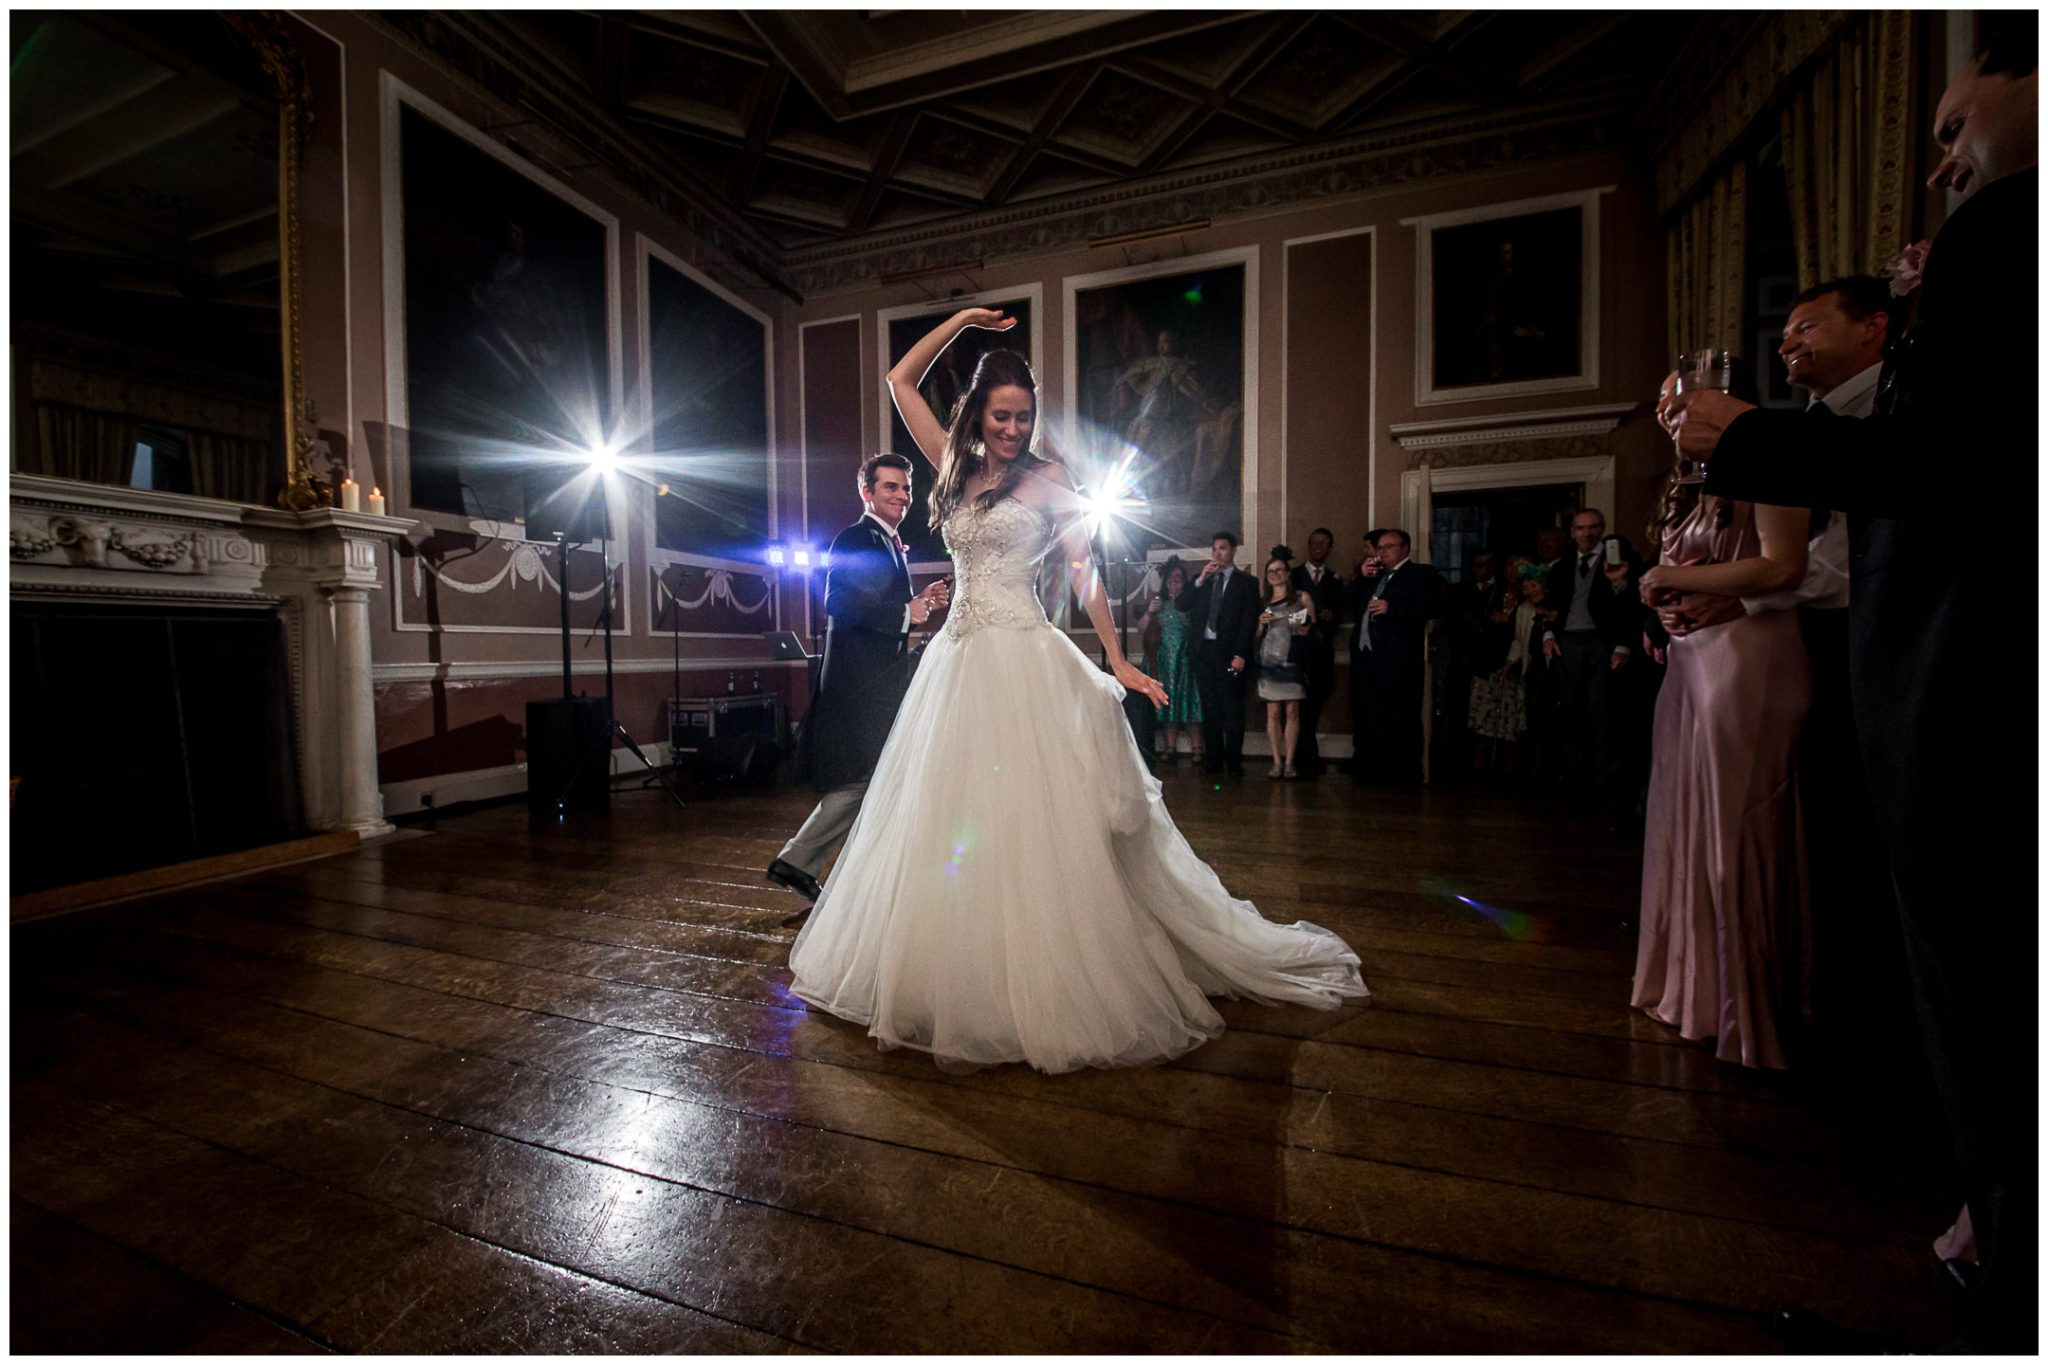 The bride performs a turn during the first dance